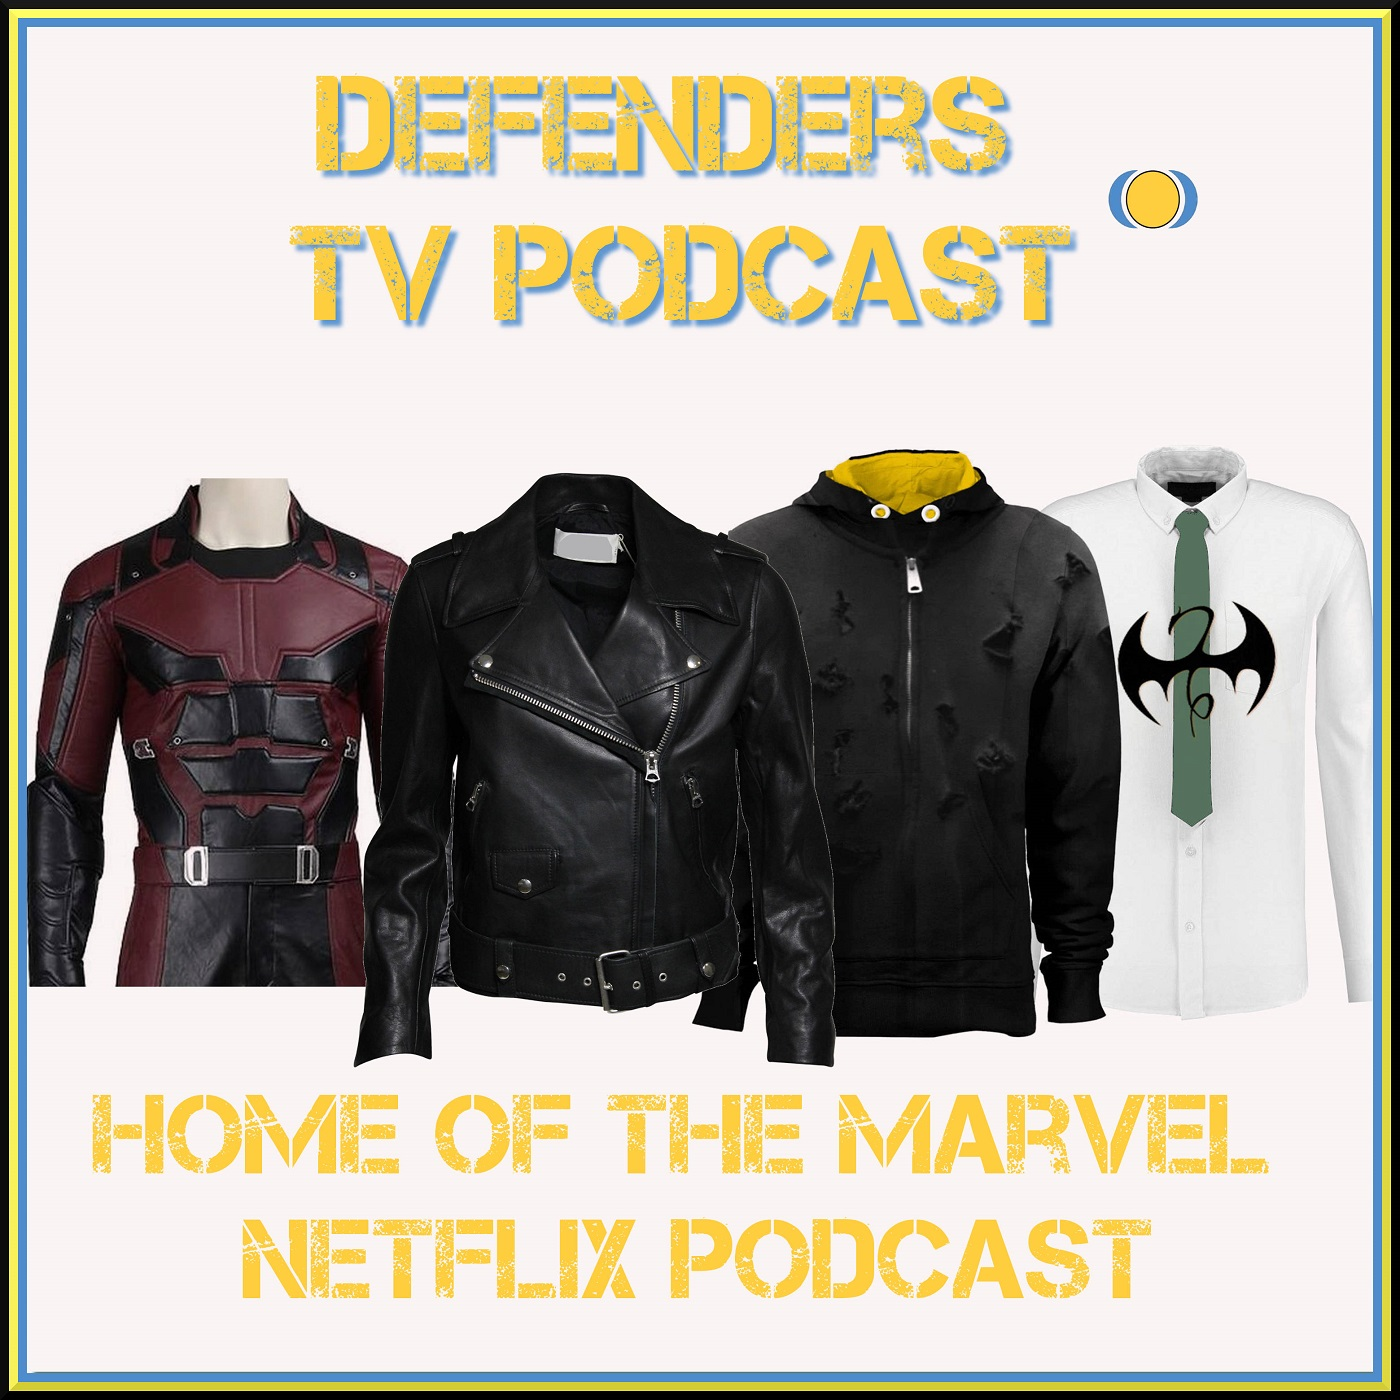 Defenders TV Podcast - The home of Luke Cage, Doctor Strange, Daredevil, Jessica Jones, Agent Carter and Iron Fist